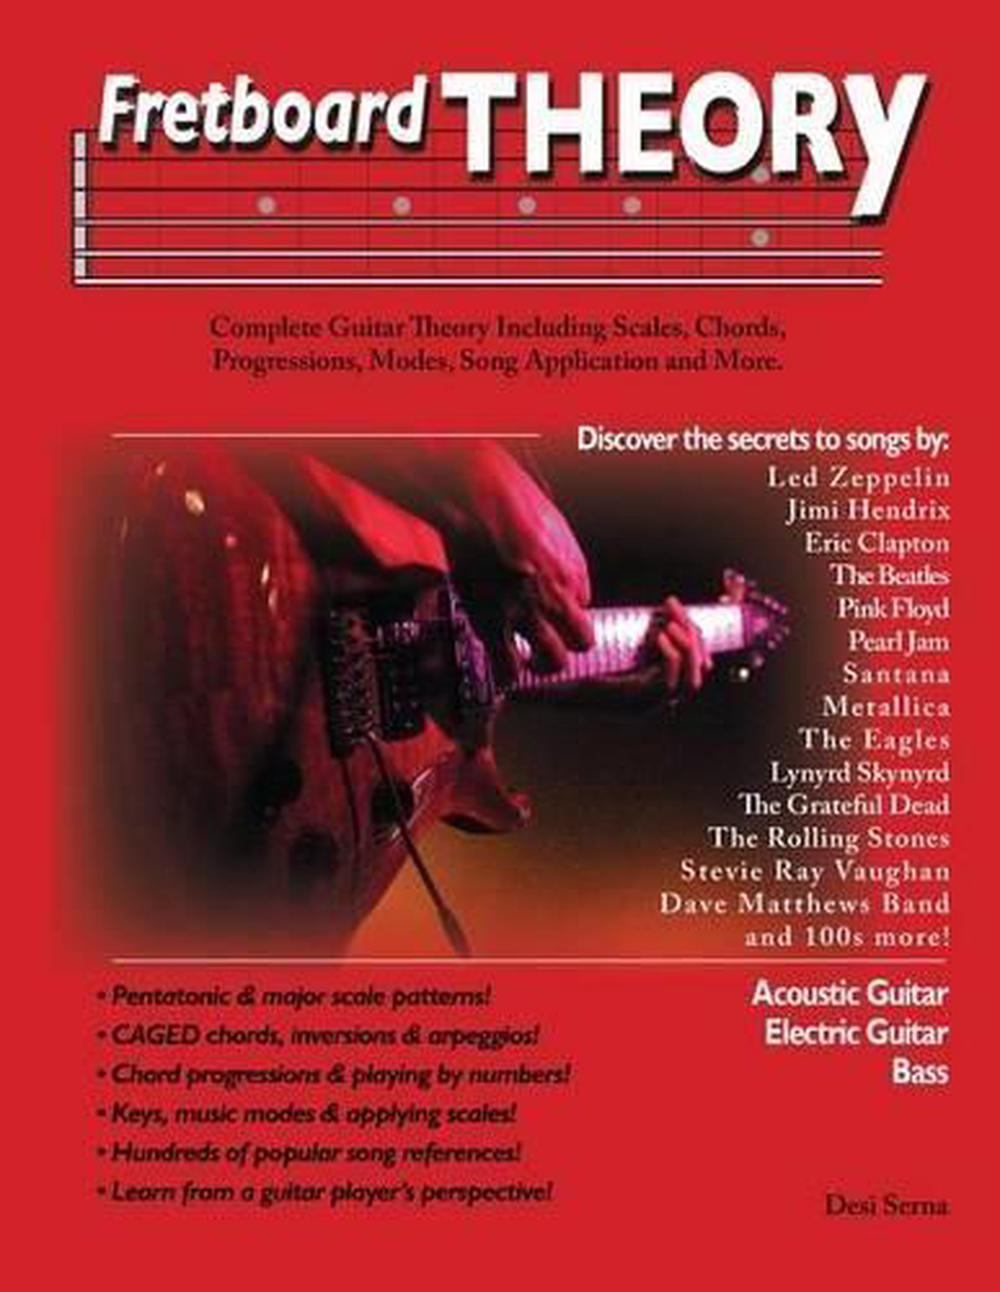 Fretboard Theory By Desi Serna English Paperback Book Free